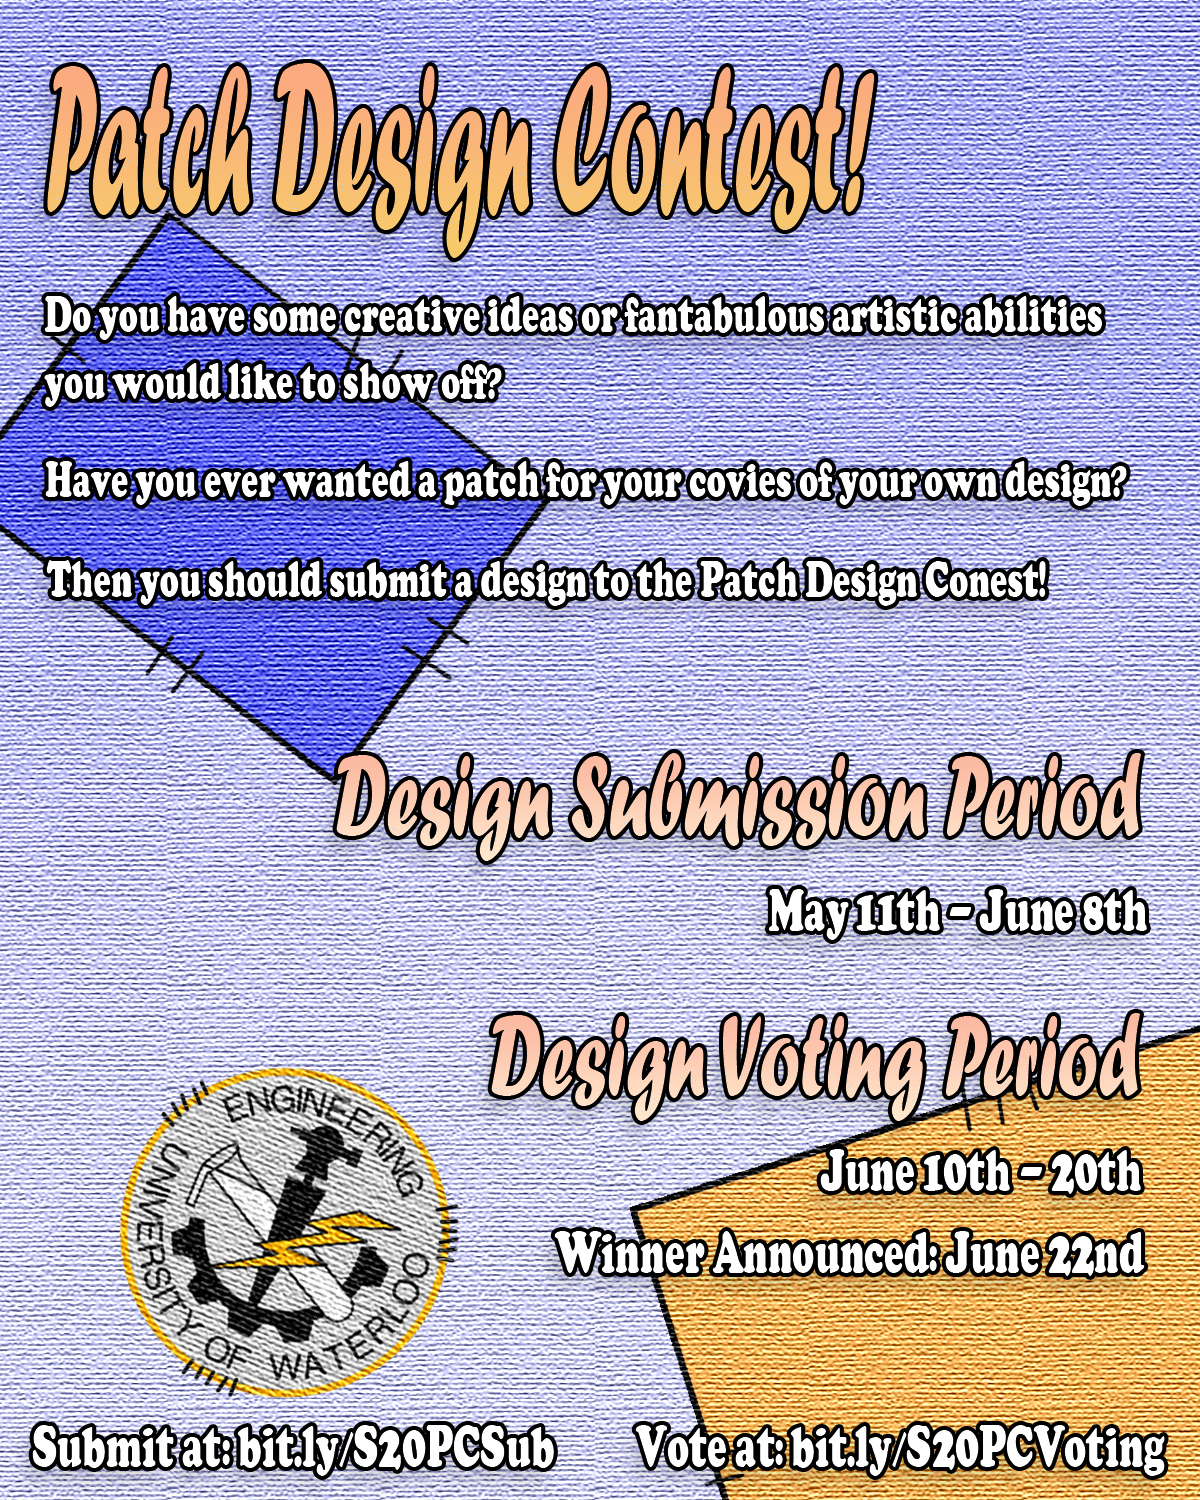 EngSoc Patch Design Contest